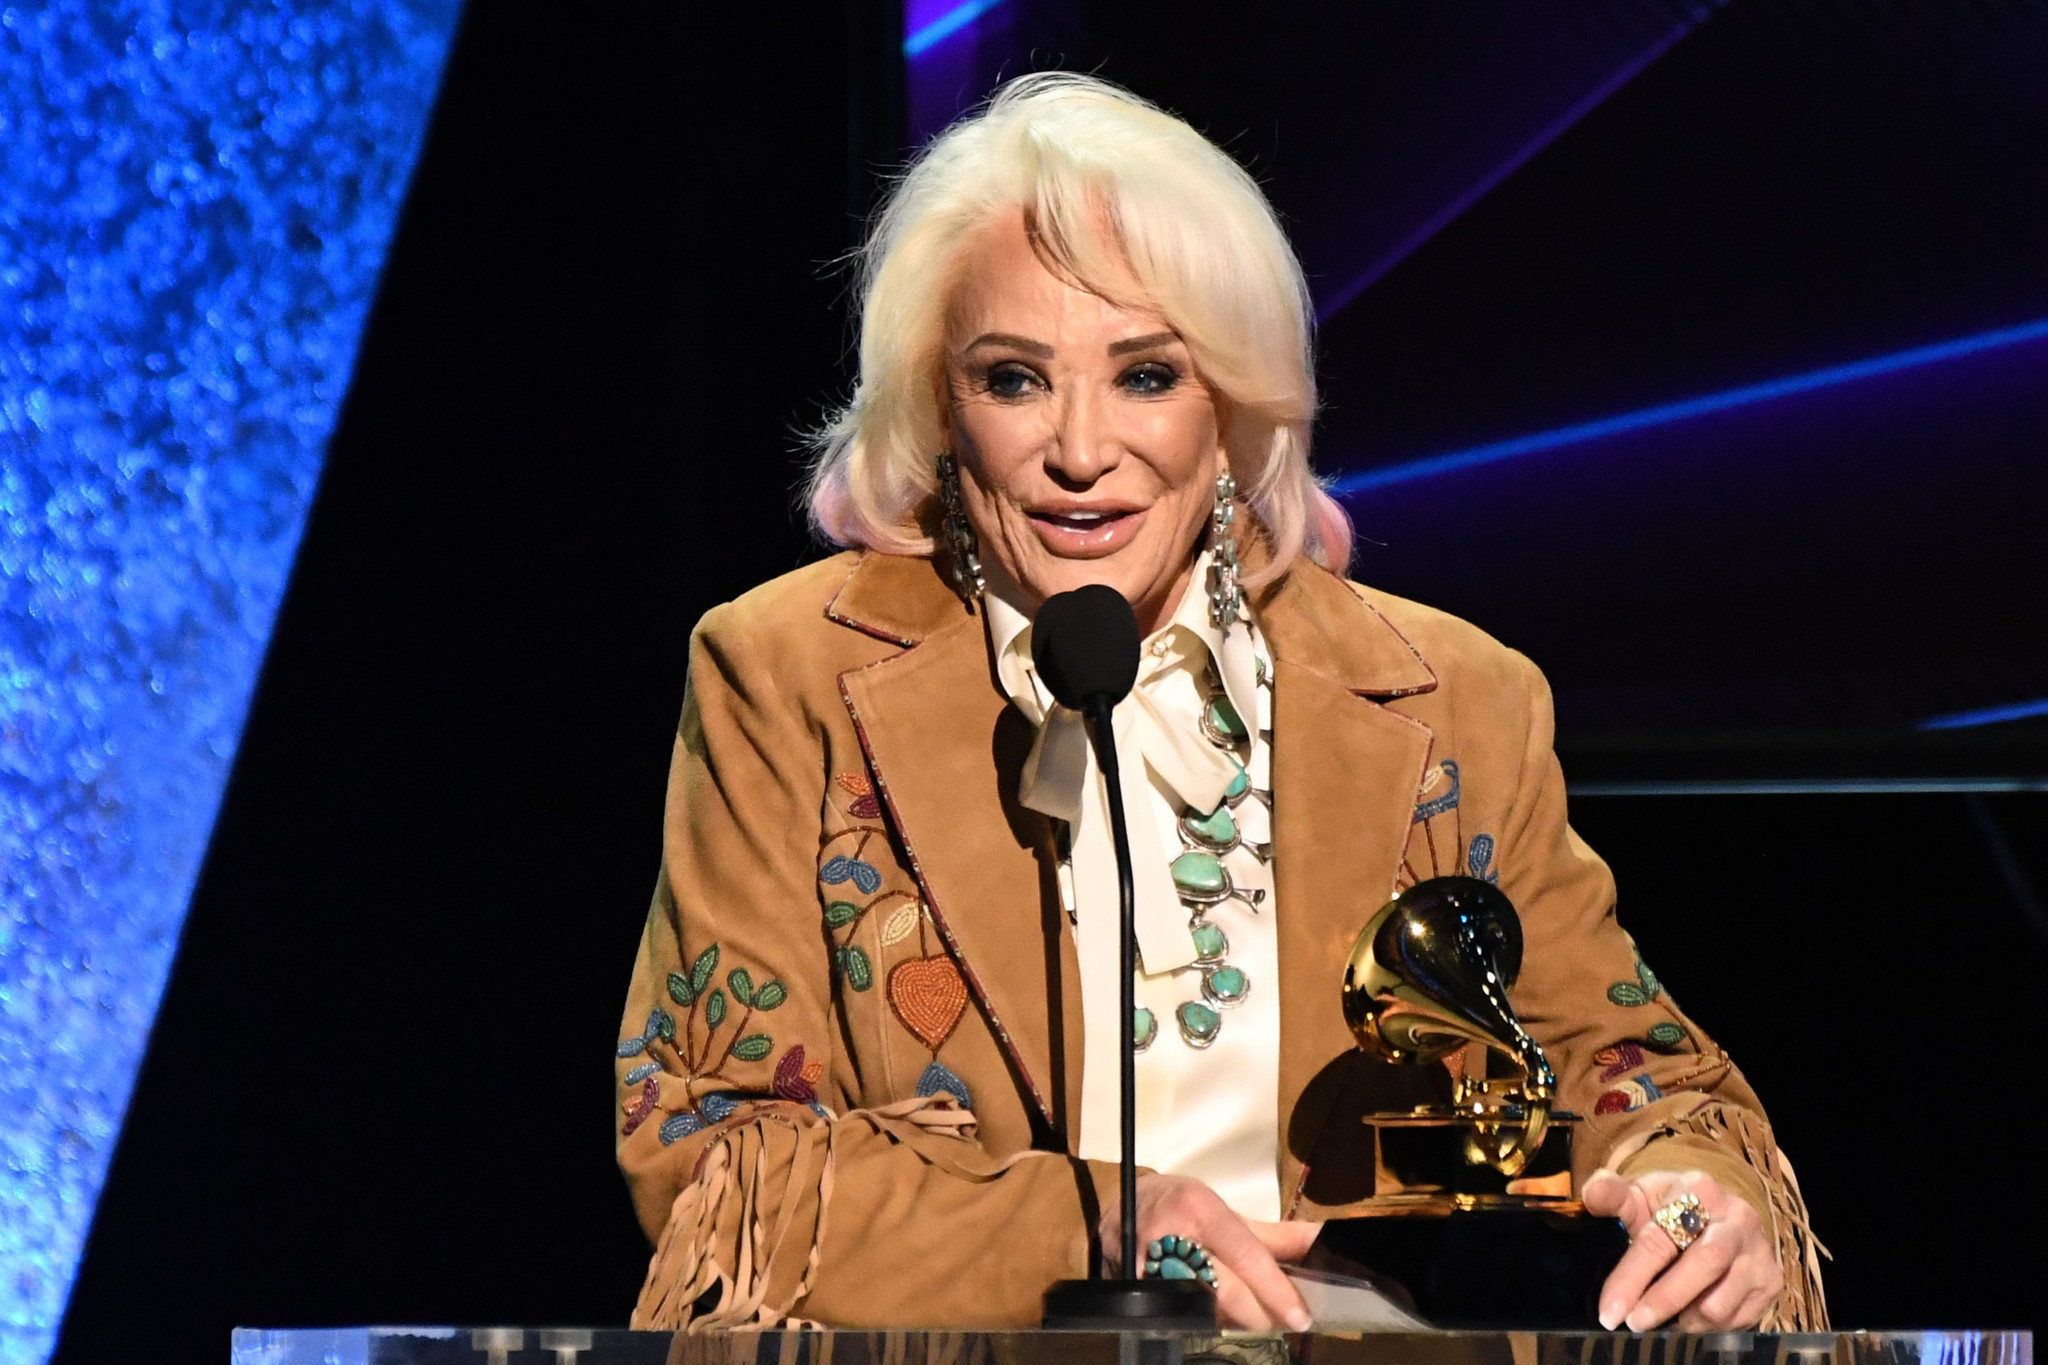 Tanya Tucker wins first Grammys, almost 50 years after first nomination